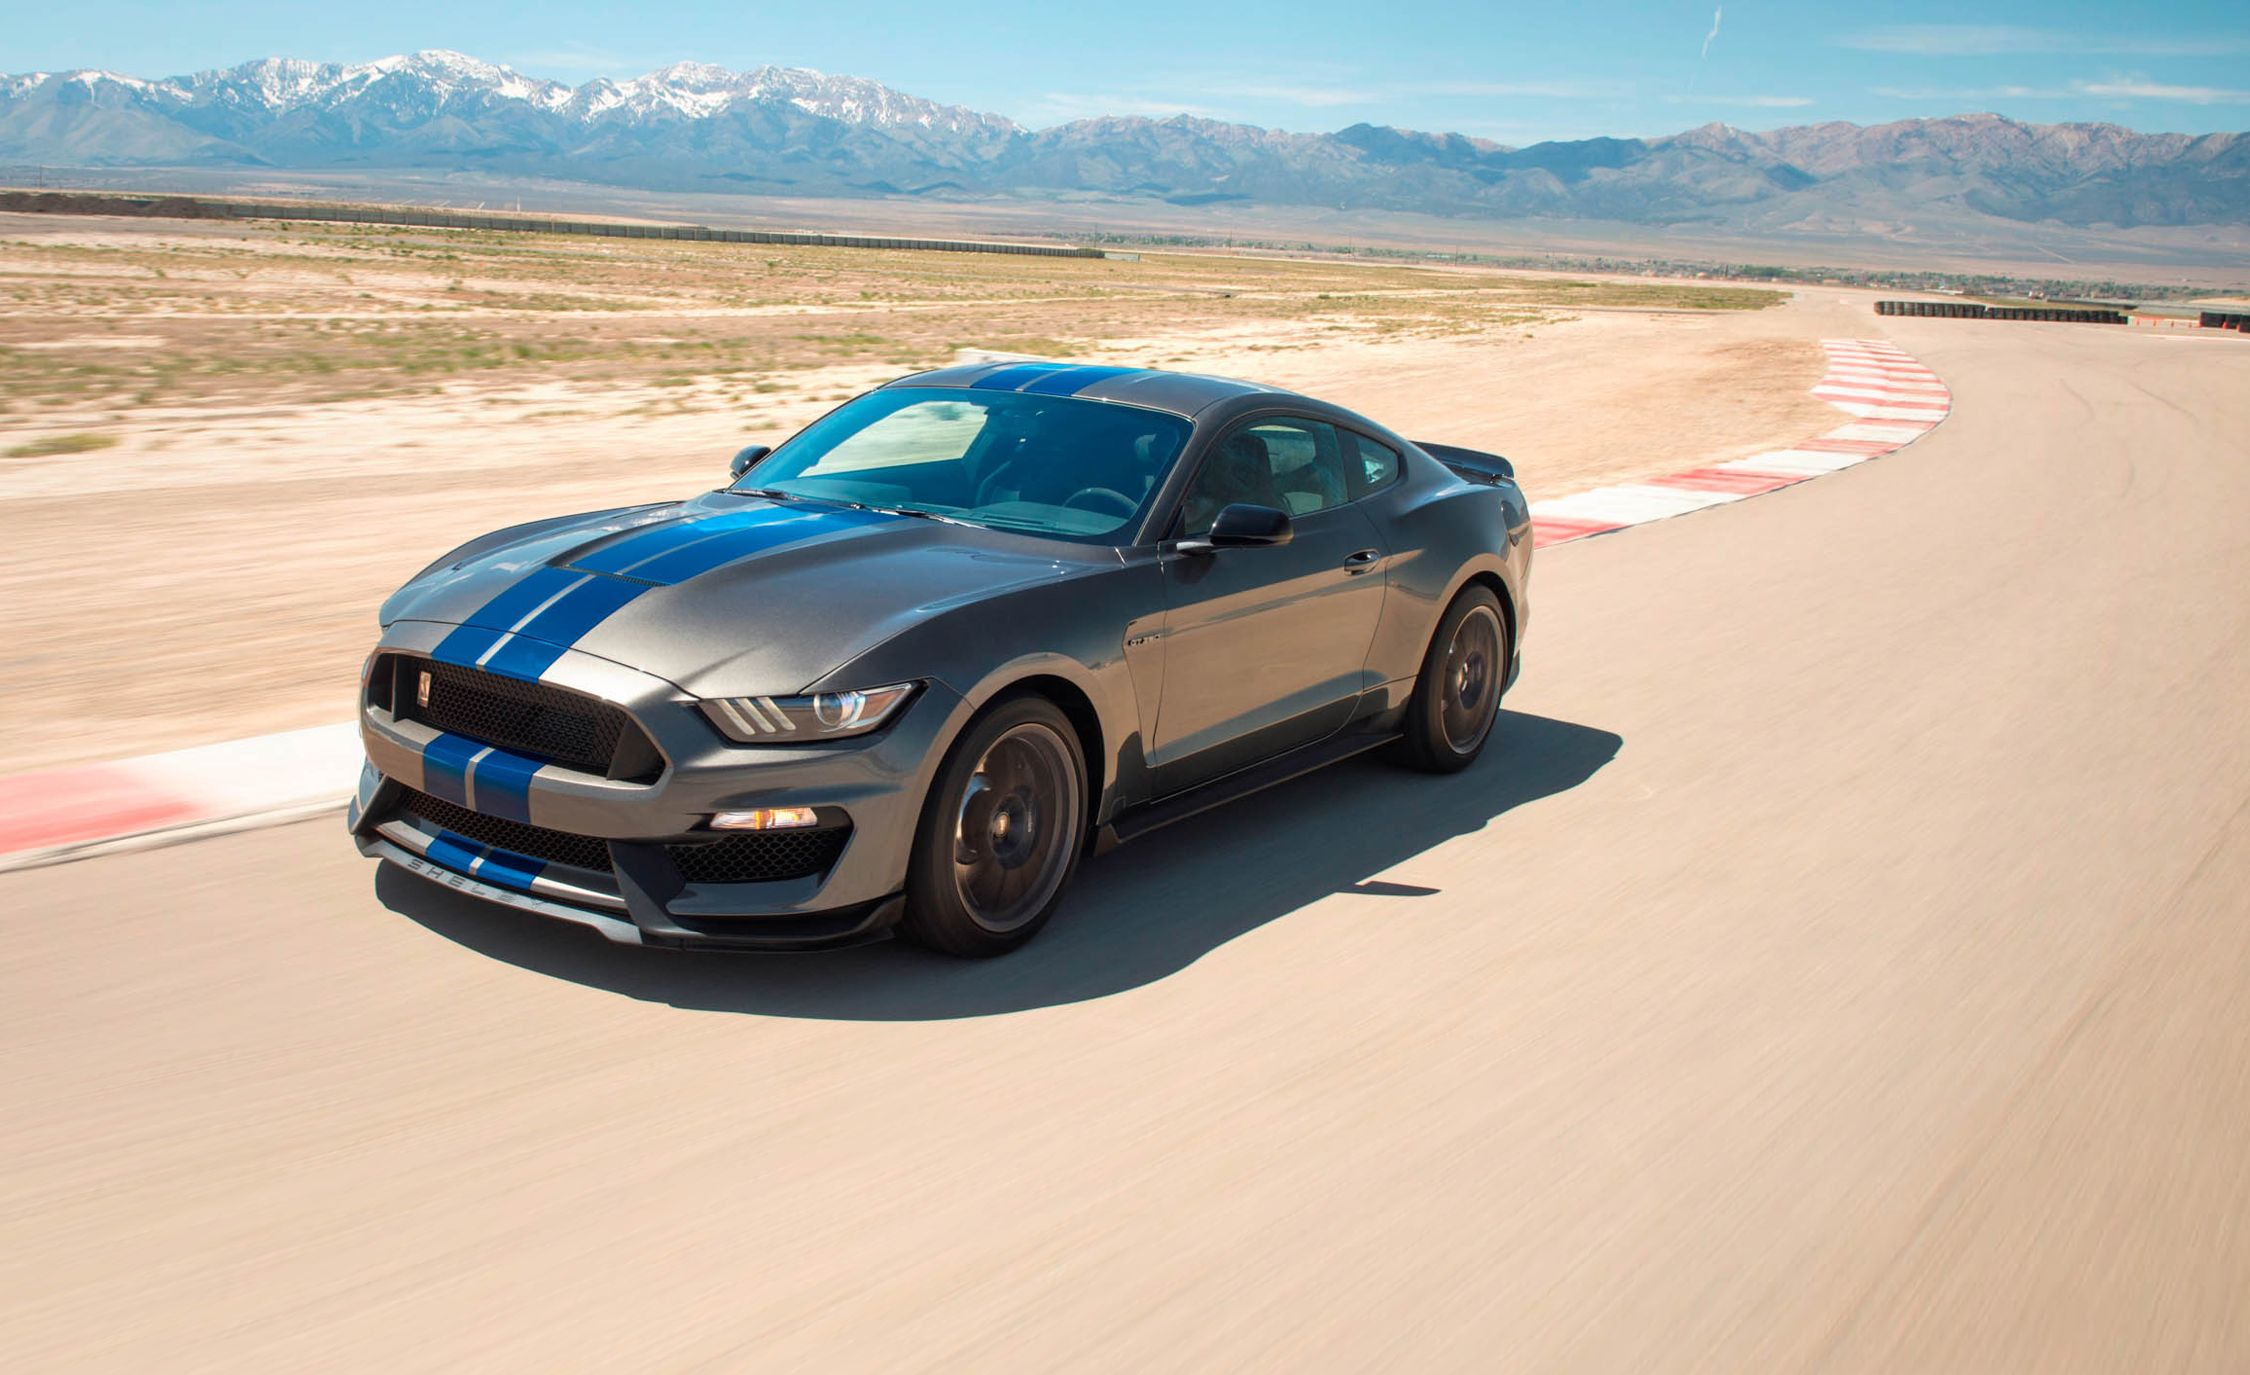 2017 Mustang Gt350 Black >> 2018 Ford Mustang Shelby GT350 / GT350R | In-Depth Model Review | Car and Driver